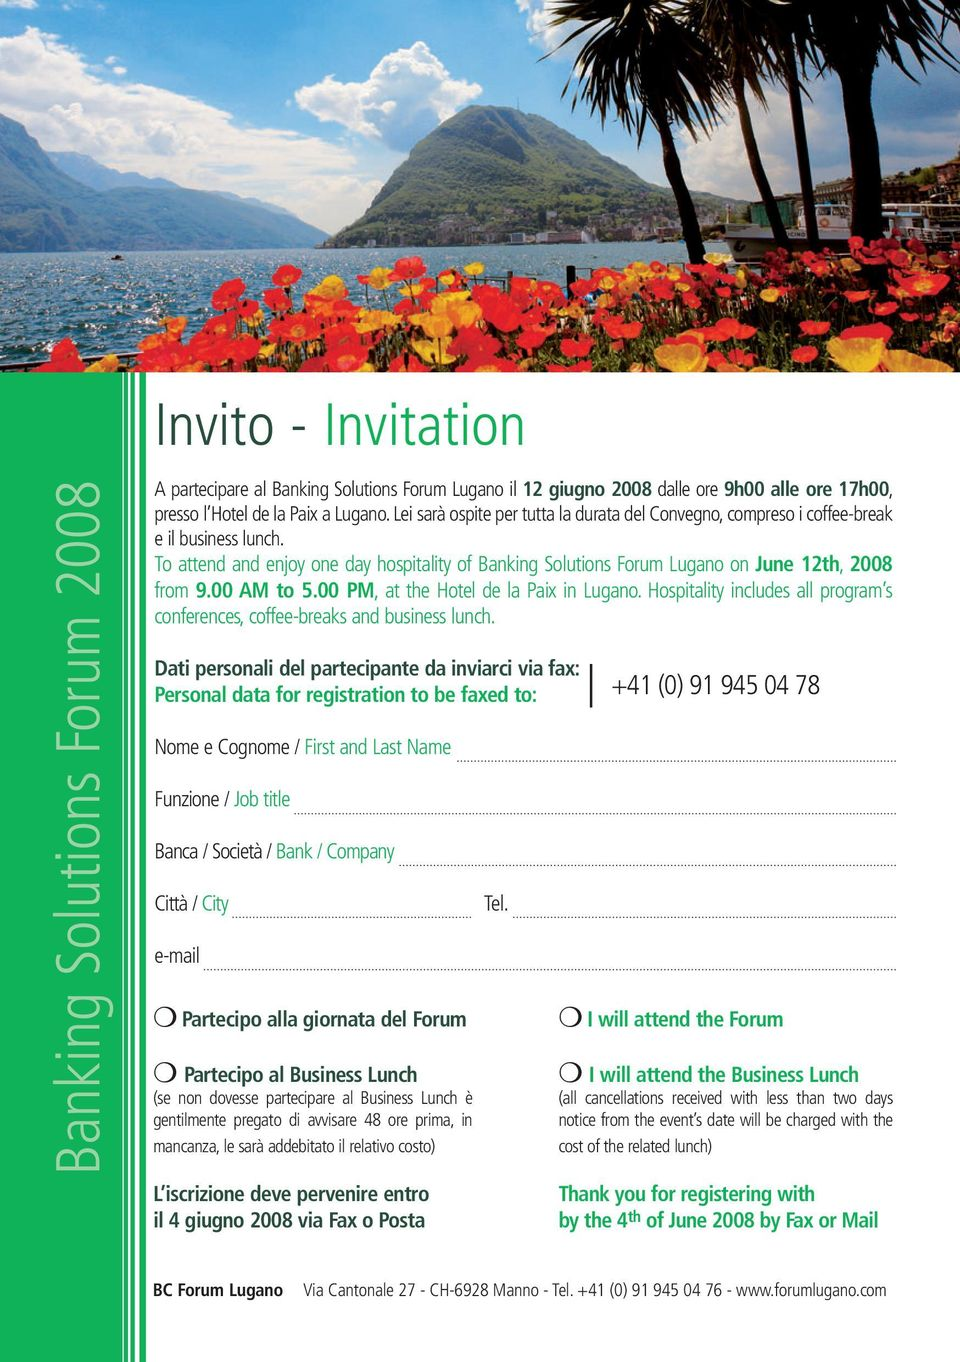 00 AM to 5.00 PM, at the Hotel de la Paix in Lugano. Hospitality includes all program s conferences, coffee-breaks and business lunch.